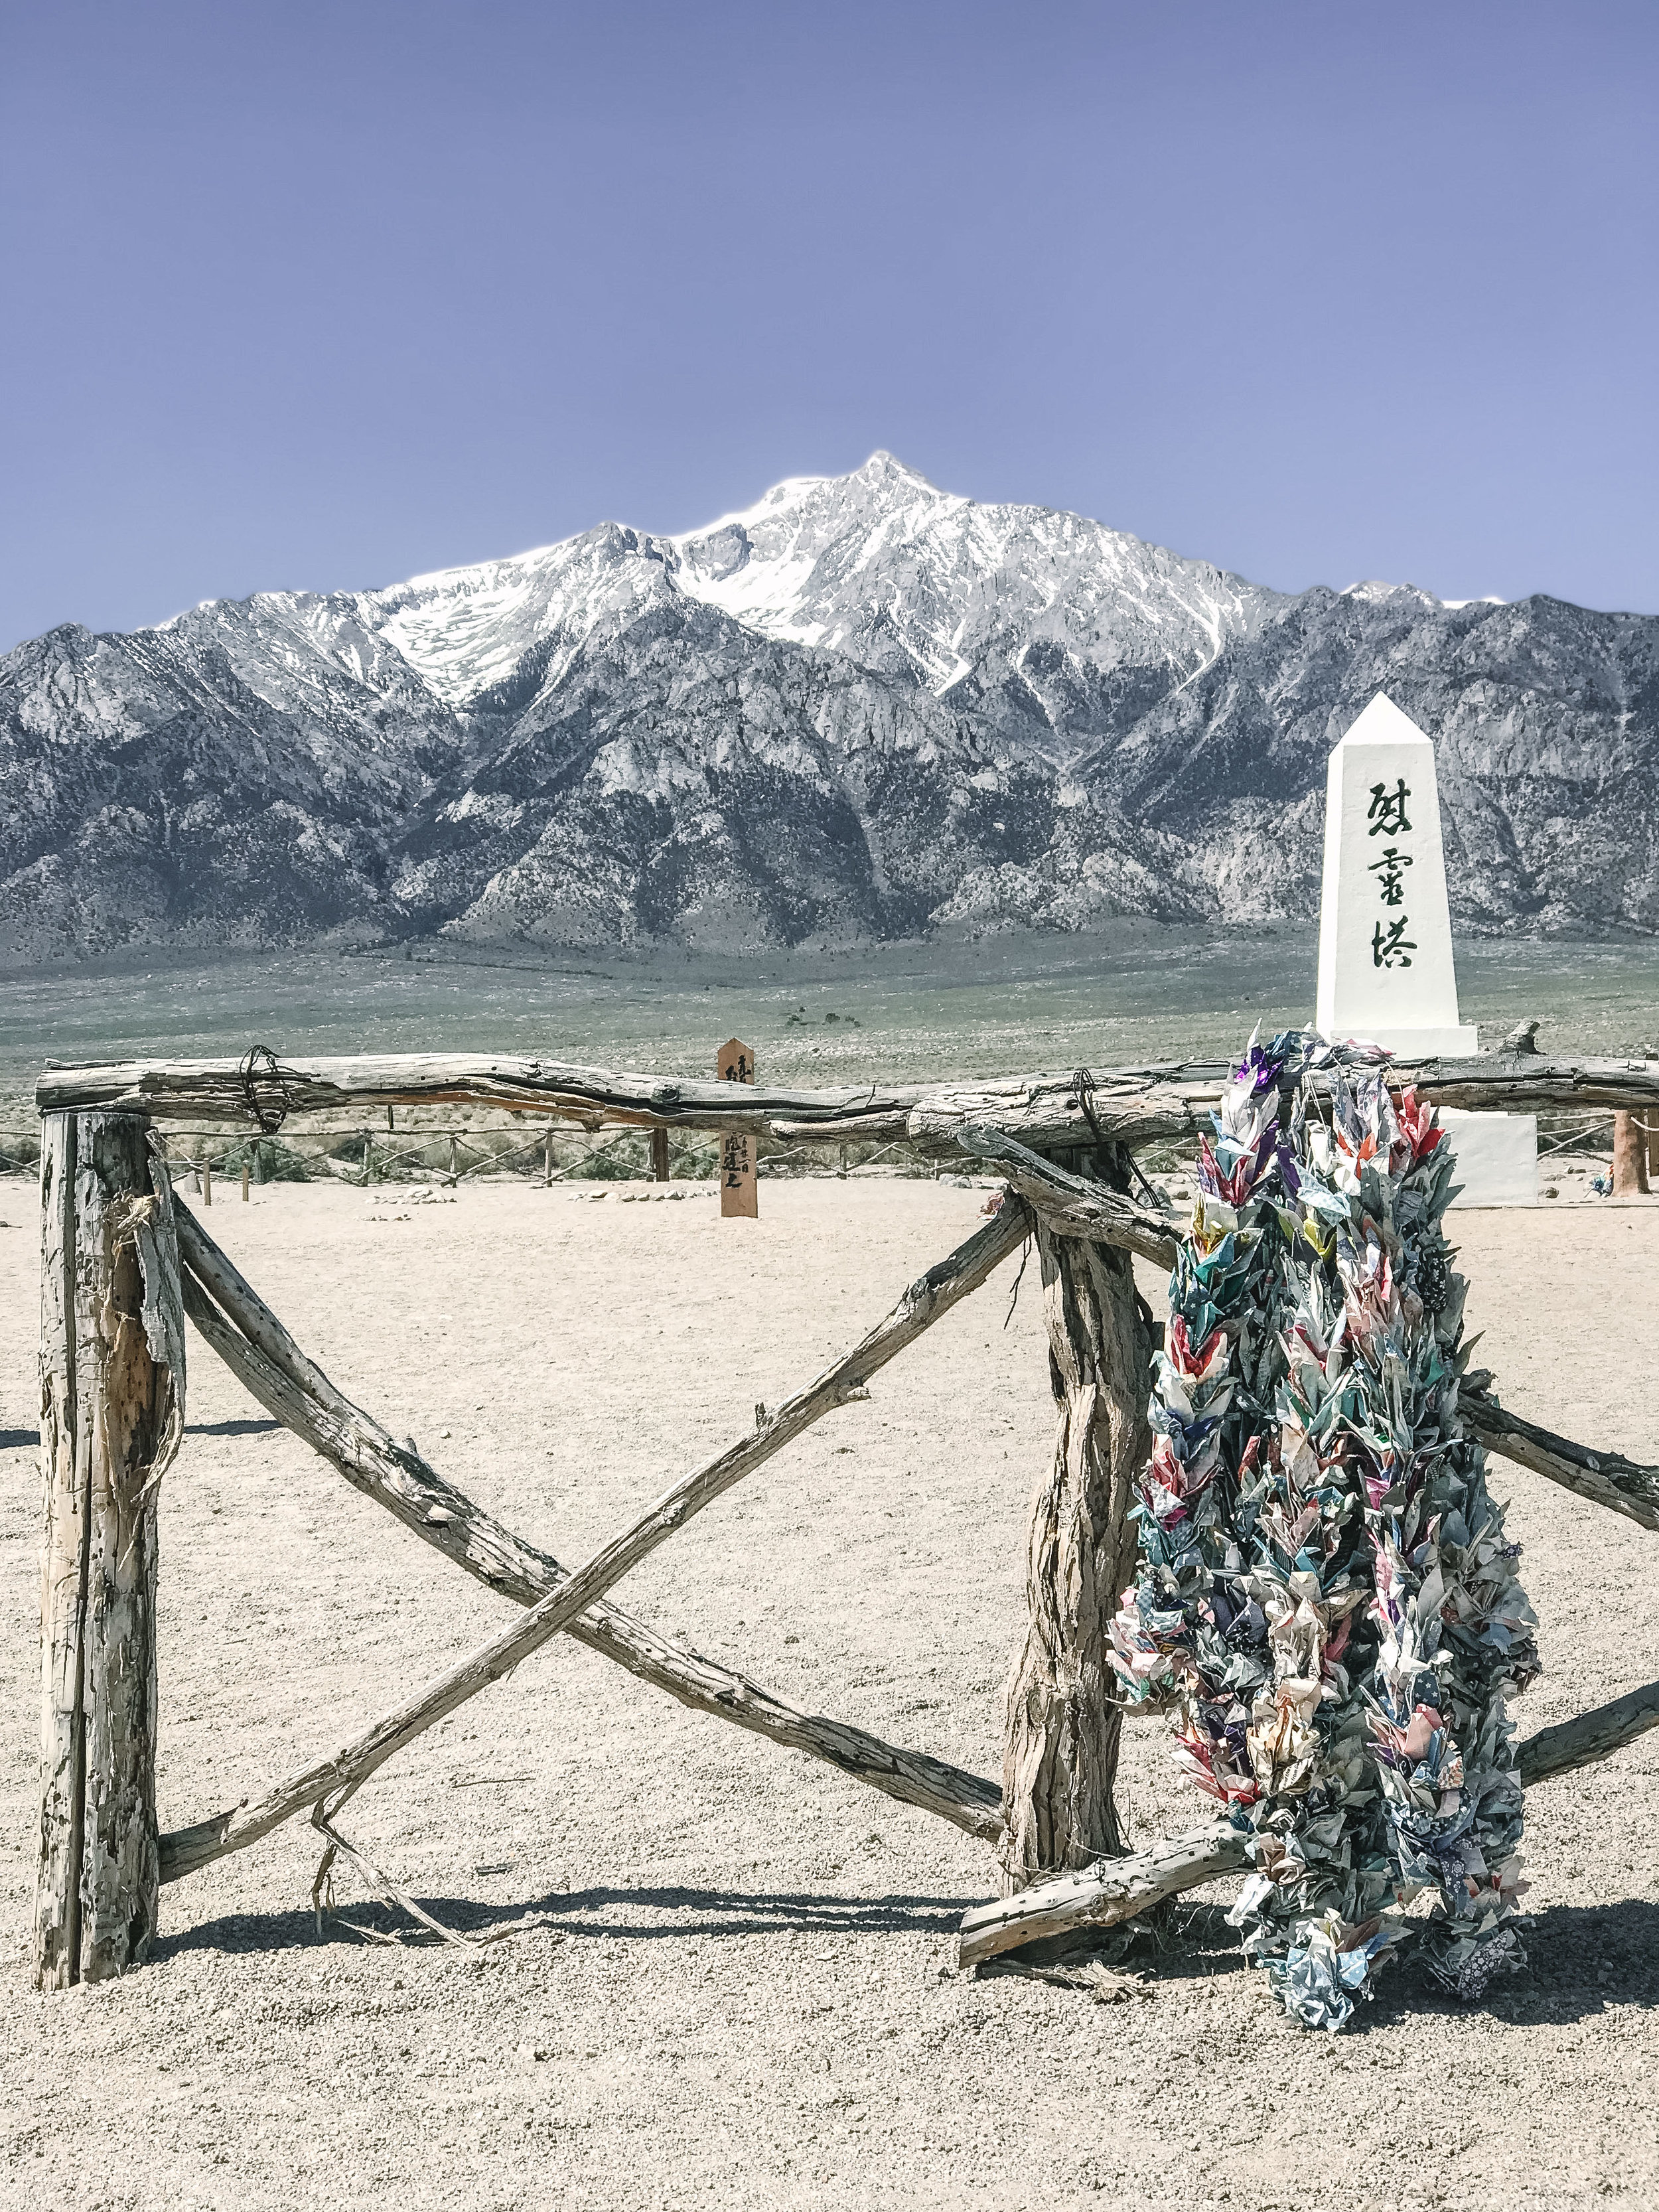 1,000 cranes with the soul consoling tower and the Sierras as a backdrop